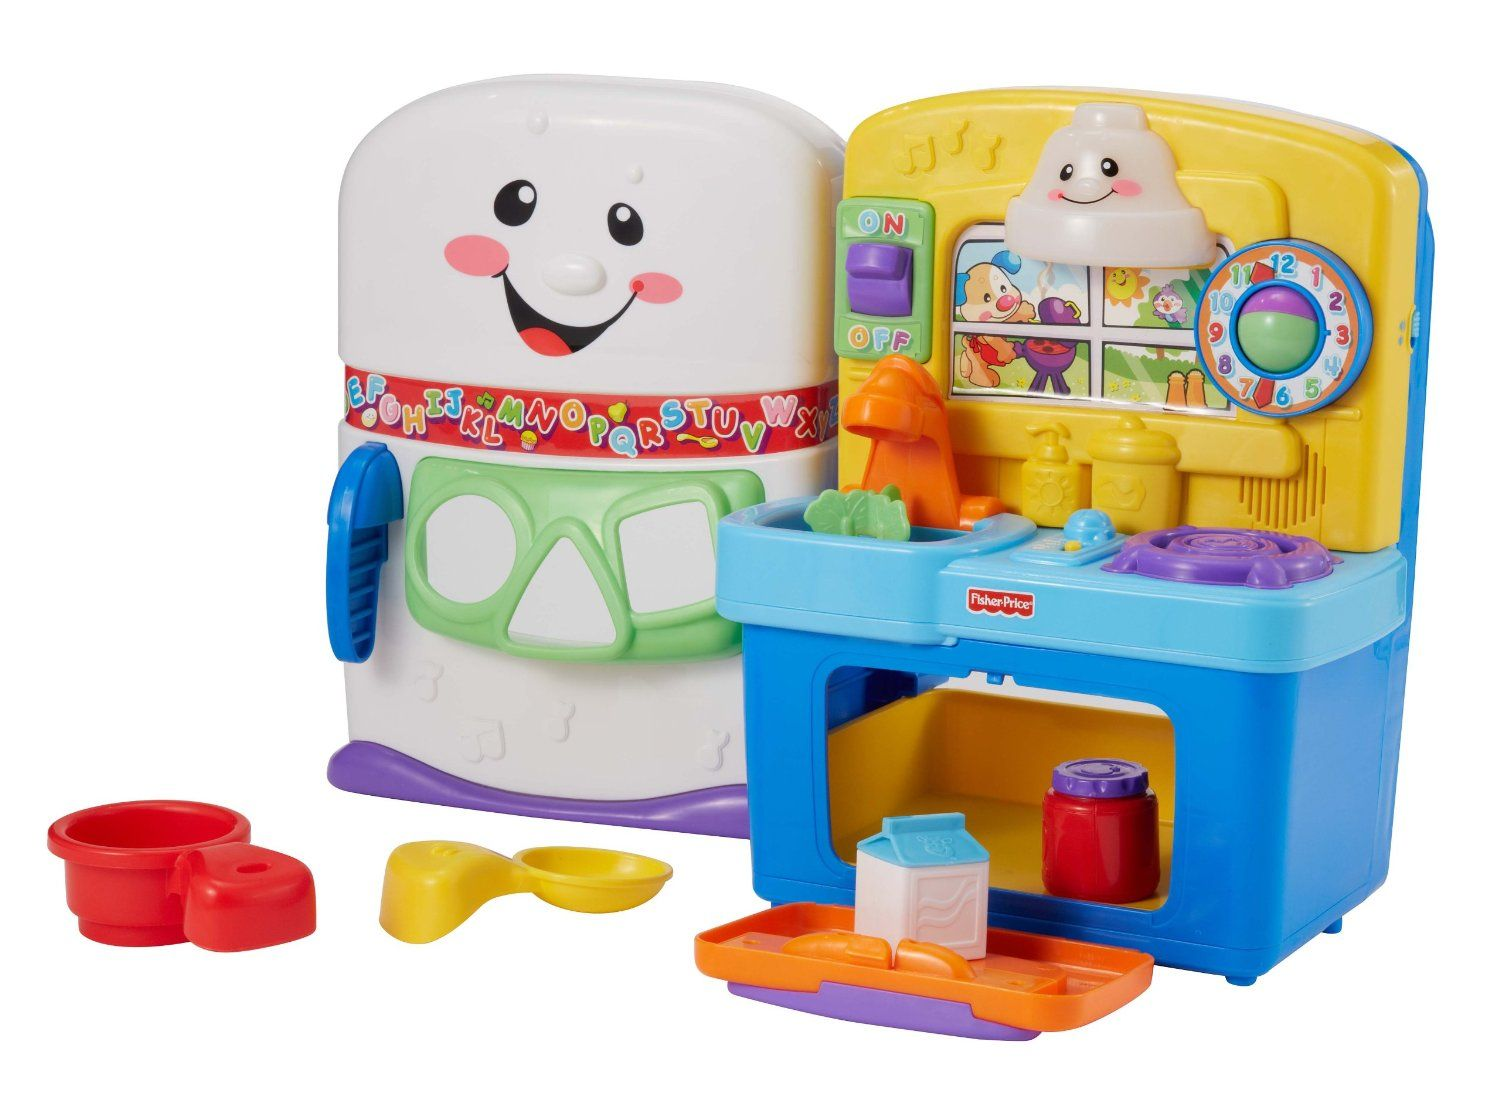 Toys For Boys To Learn From : Laugh and learn baby kitchen review cookin up fun